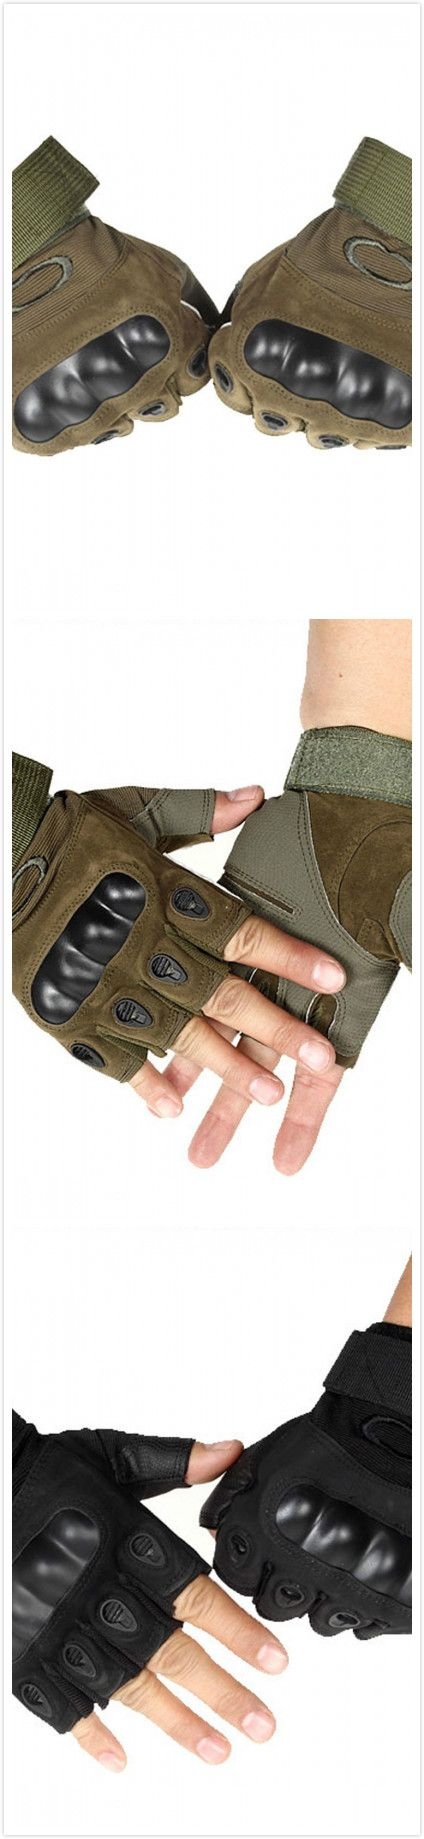 Find the very gift for the coming father's day? Why not try this?The gloves are designed specially for sports lovers. It is extremely wear-resistant. It is ideal for outdoors activities like cycling, riding, shooting, tactical activities. The materials in the palm is anti-slip! Most important, it is just $9.99 now! Shop now